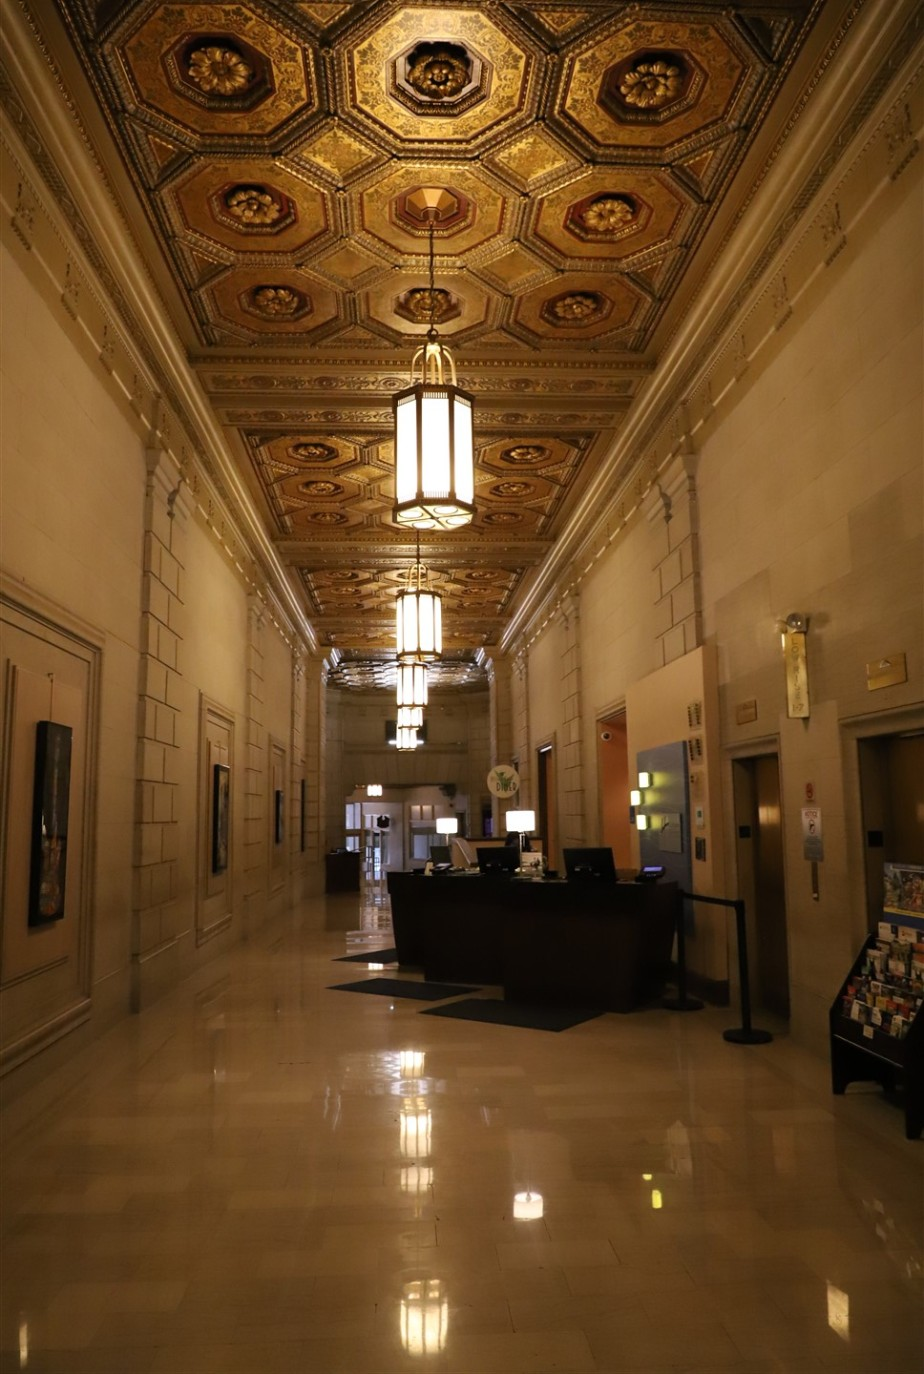 Cleveland – March 2019 – Re purposing Historic Buildings as Hotels